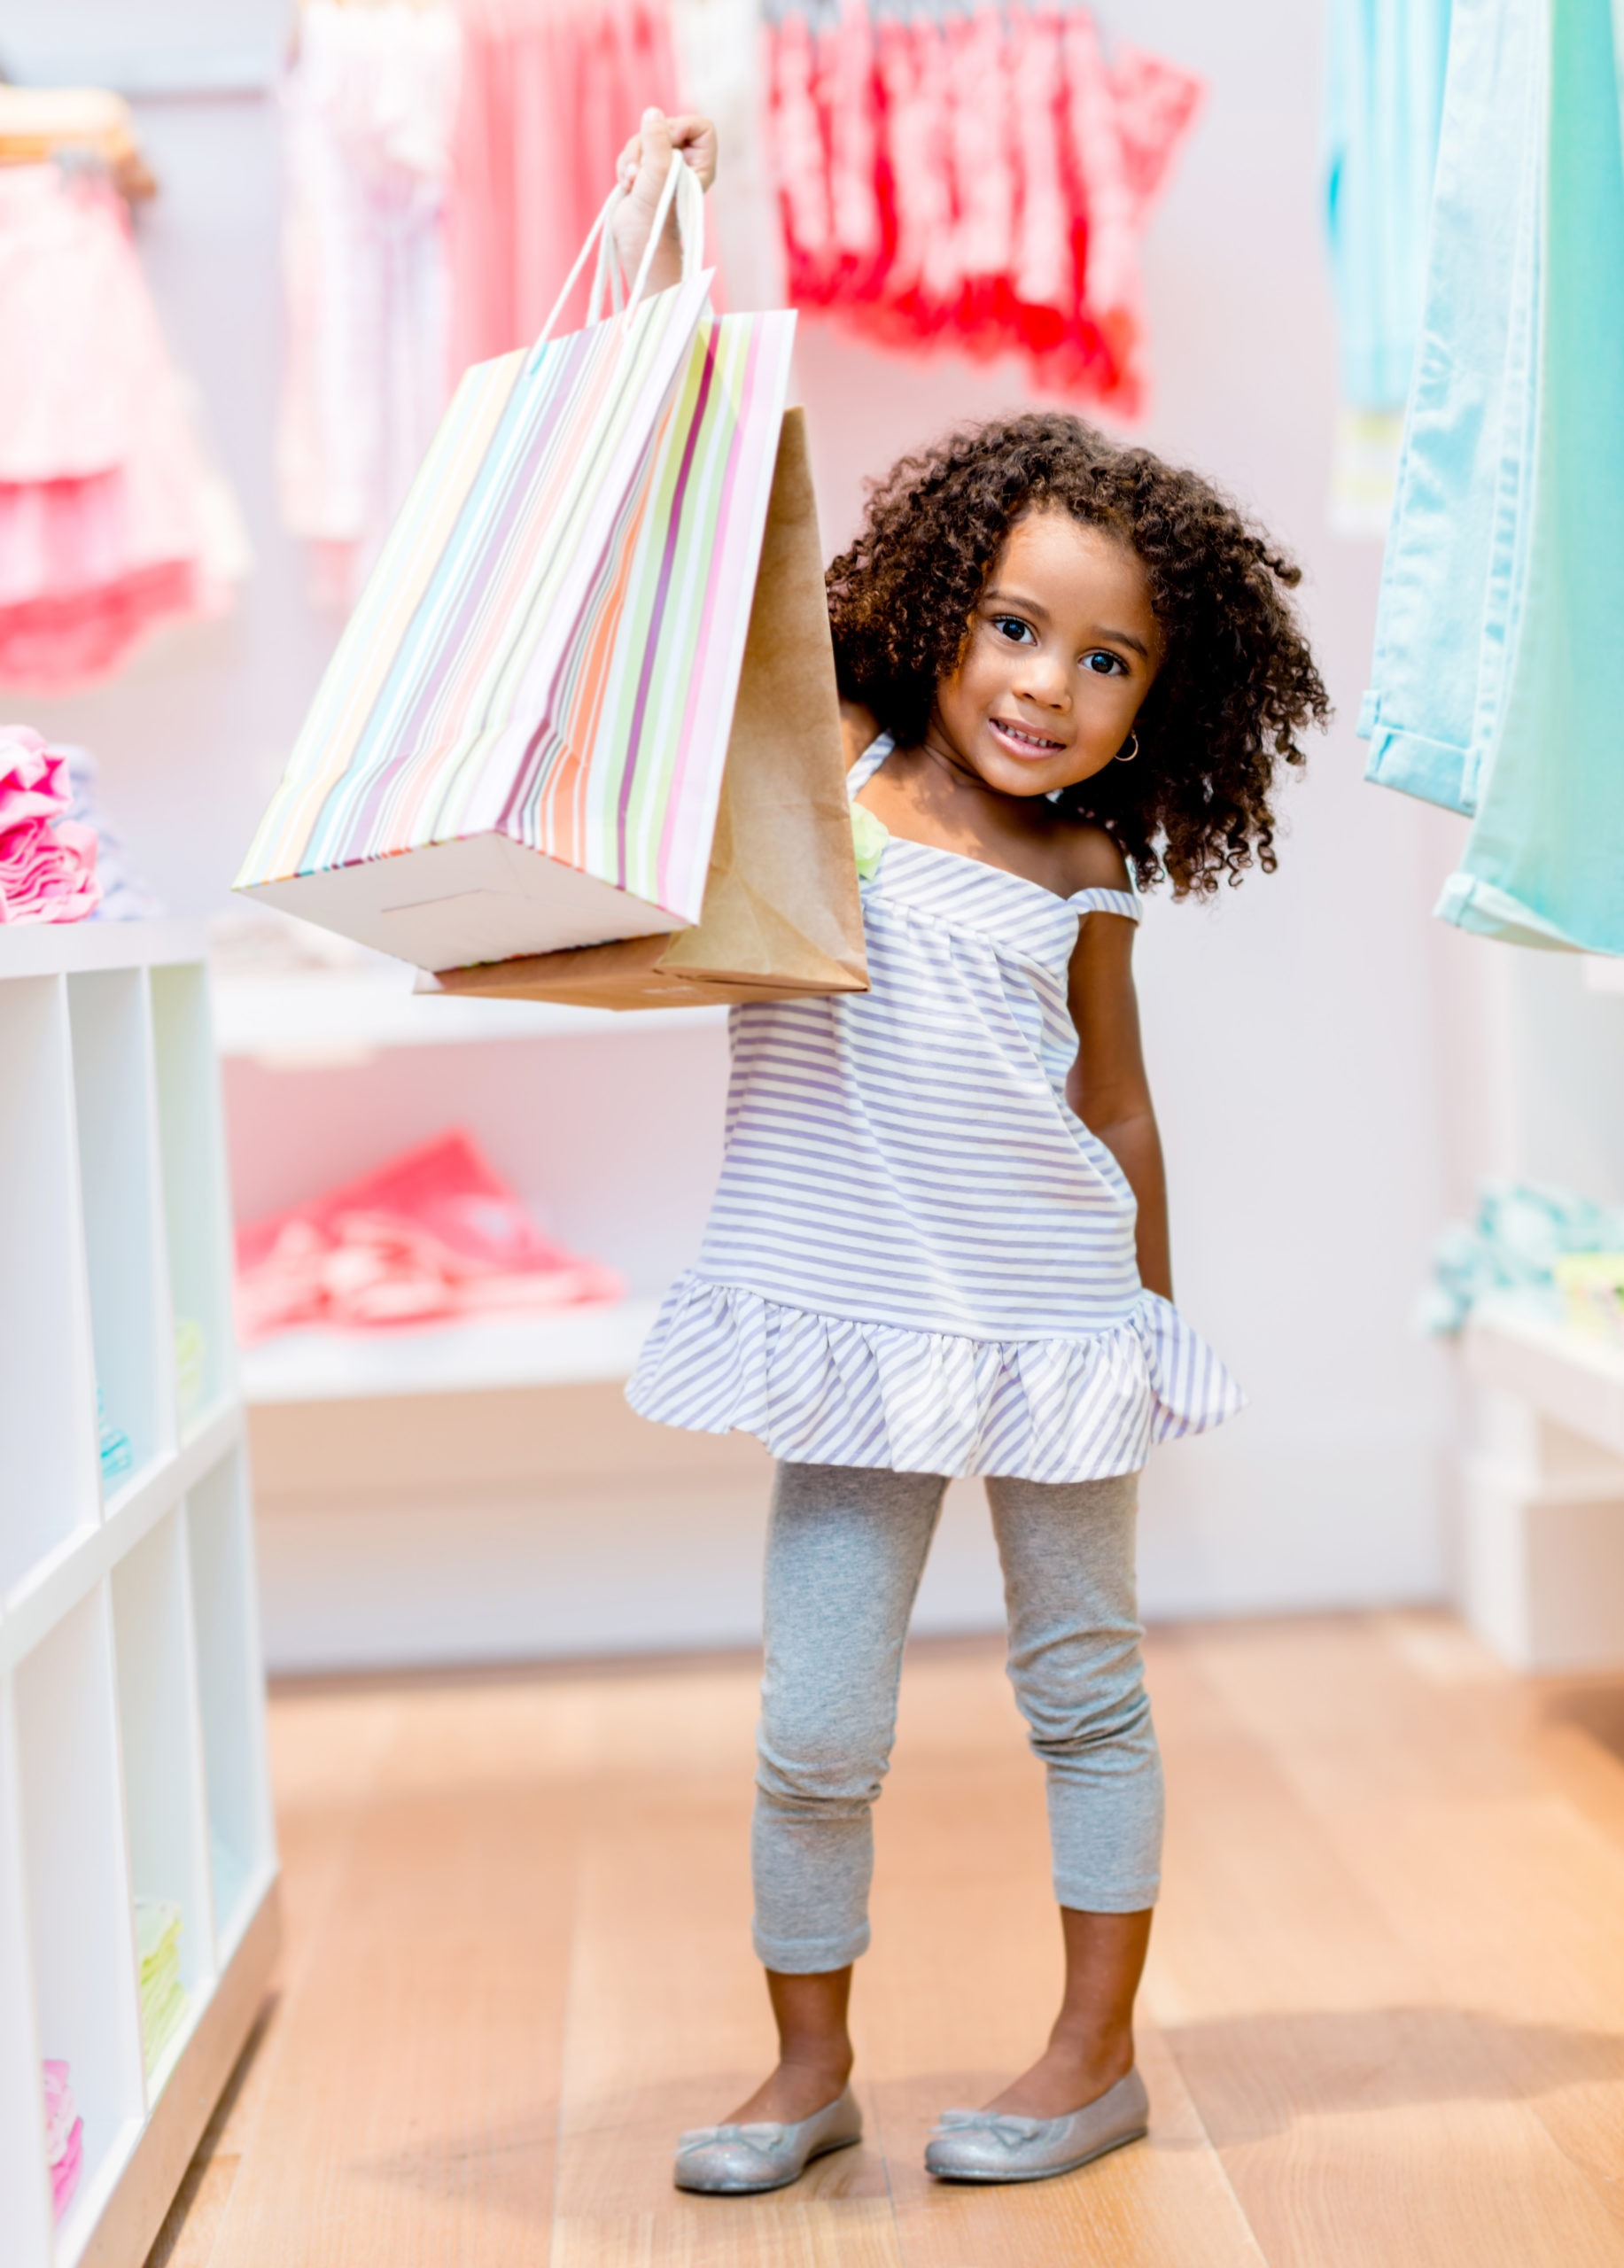 Cute,Little,Girl,With,Shopping,Bags,At,The,Store